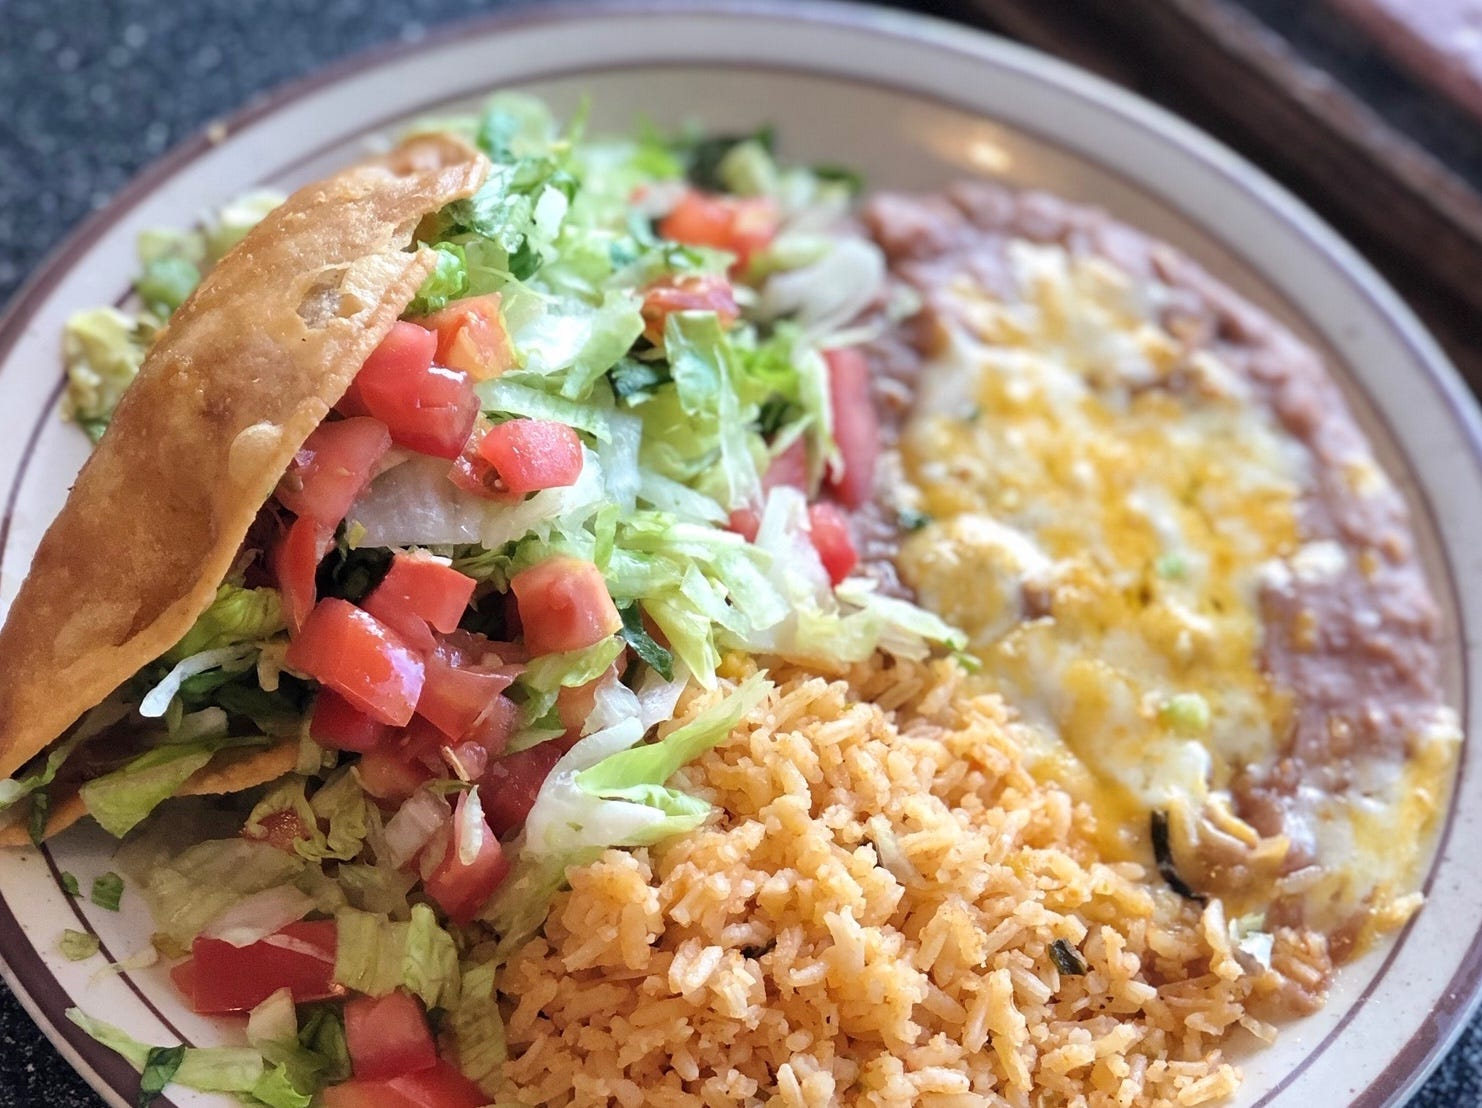 Serrano: The taco, rice and beans Tax Day special at Serrano's Mexican Restaurants.